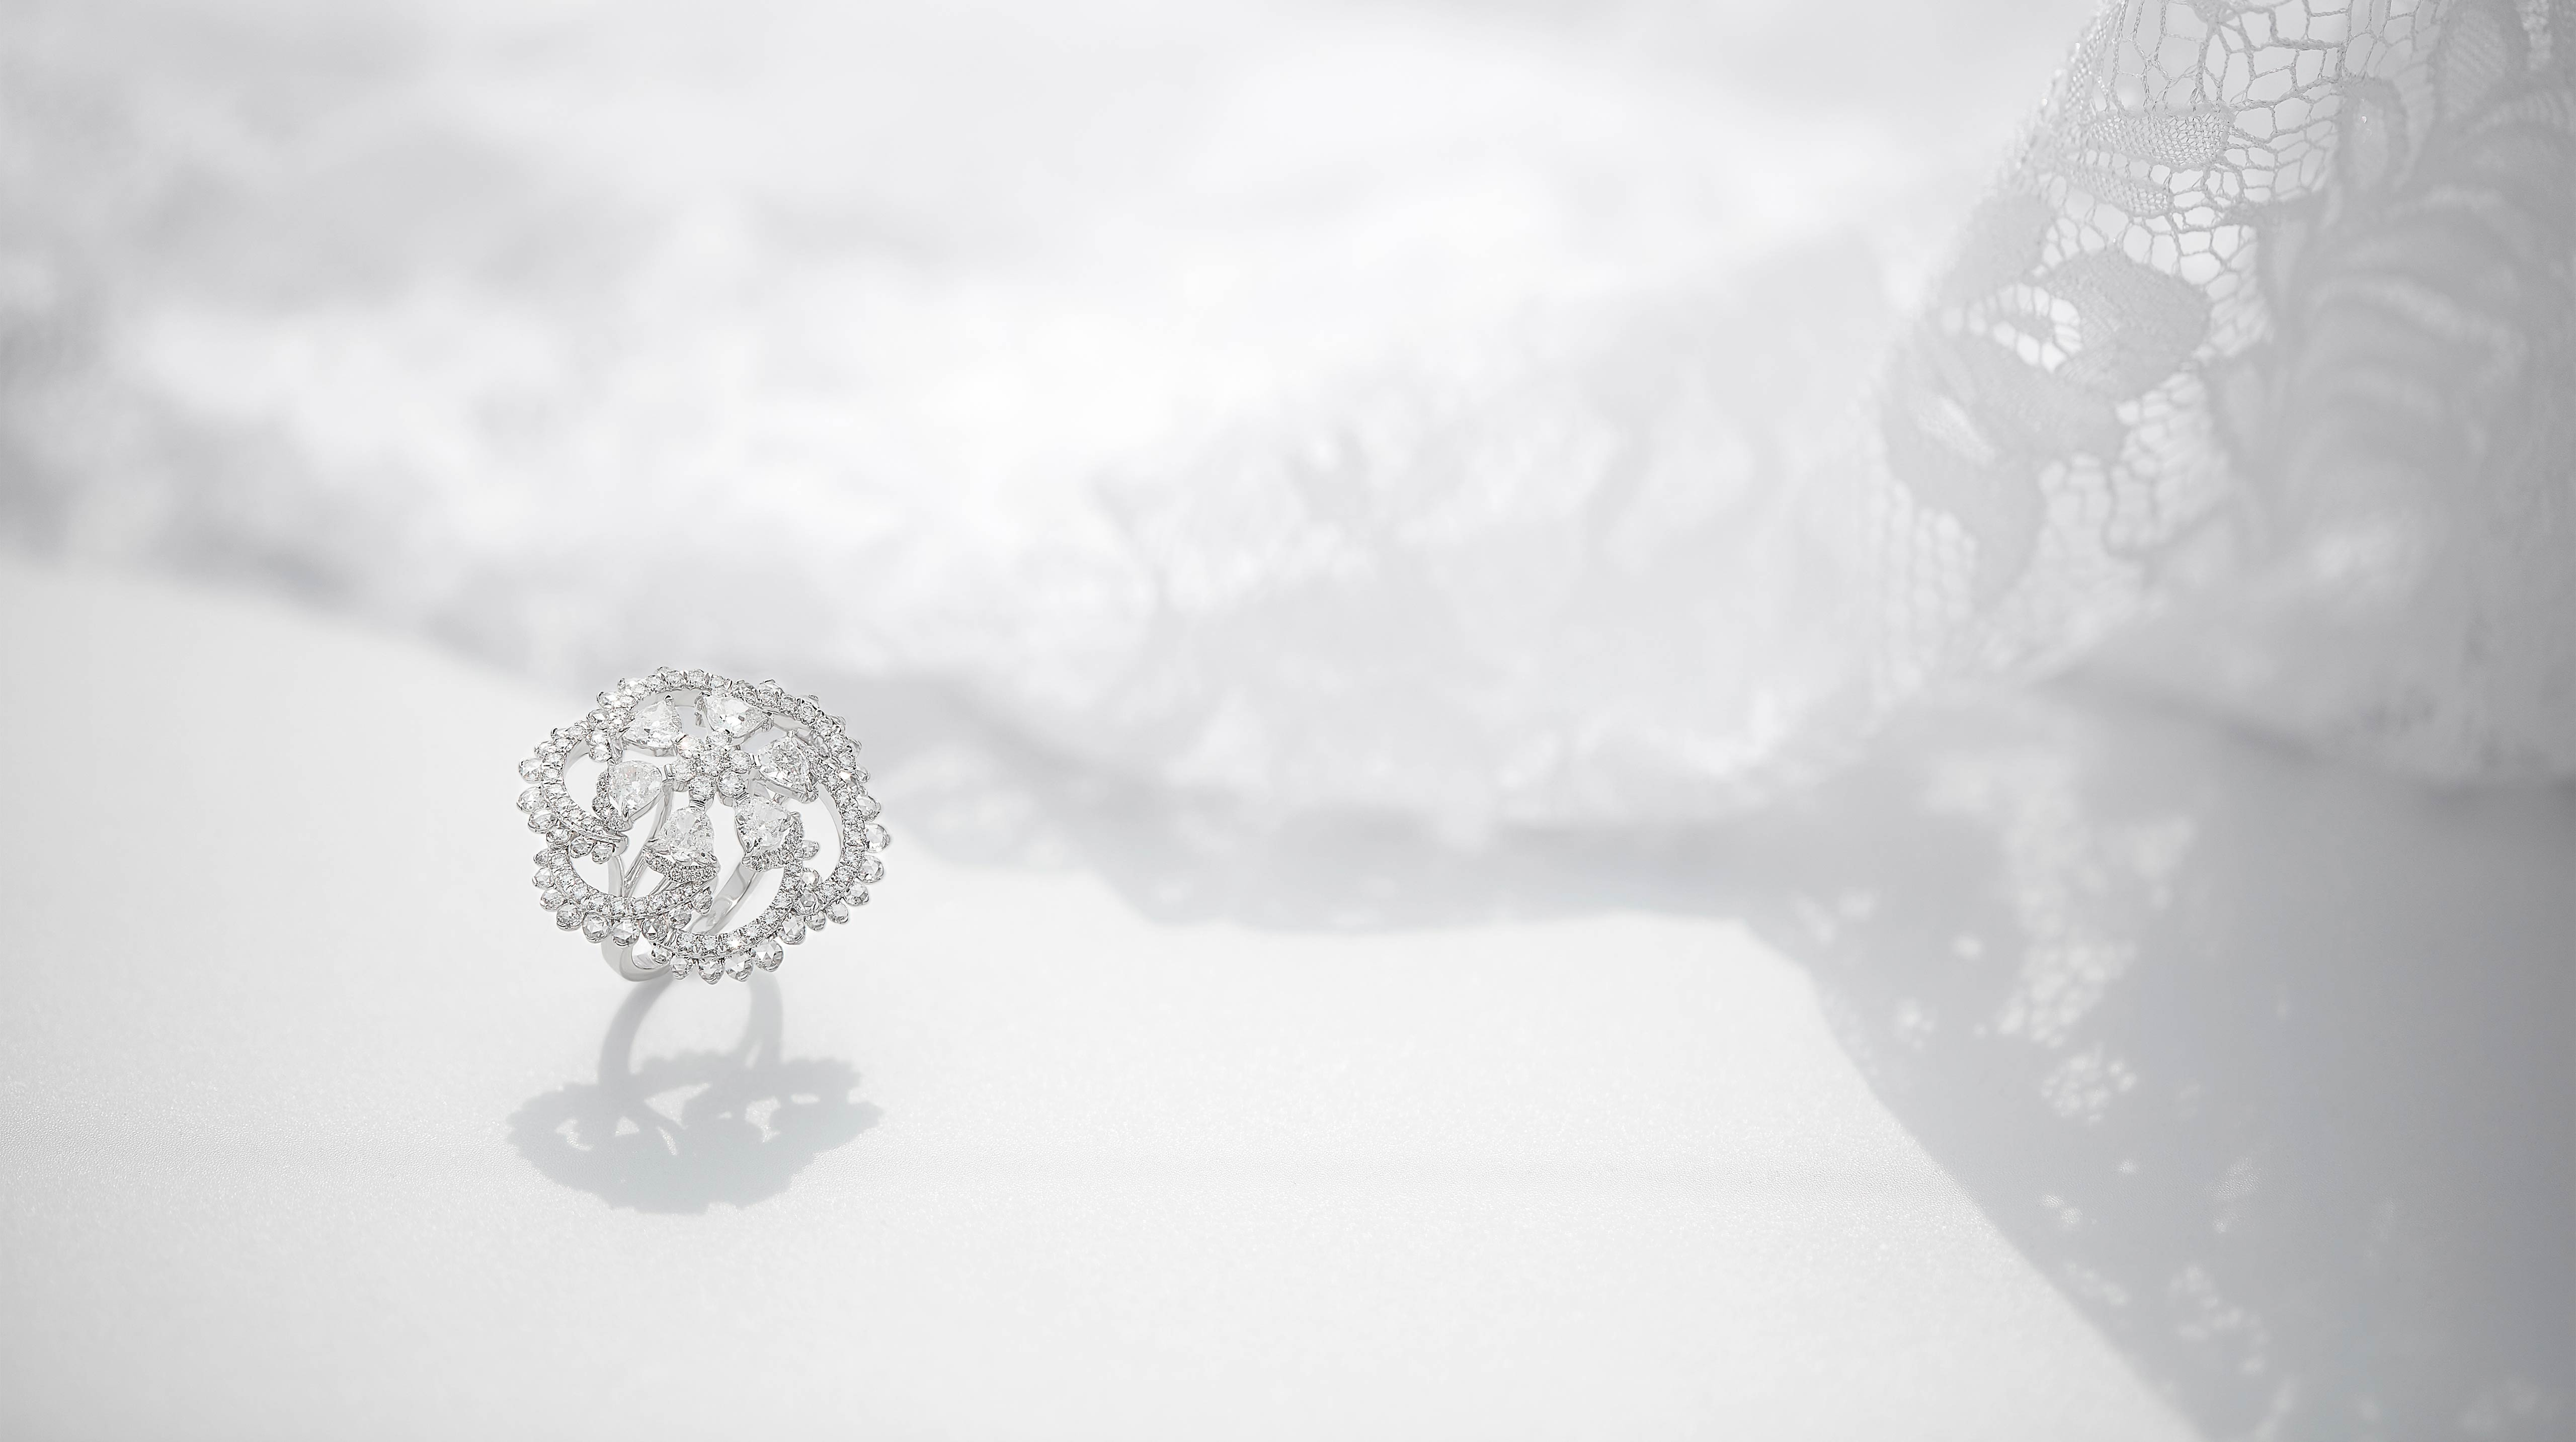 Jewel - the delicate lace of Chantilly weaves surreal patterns.